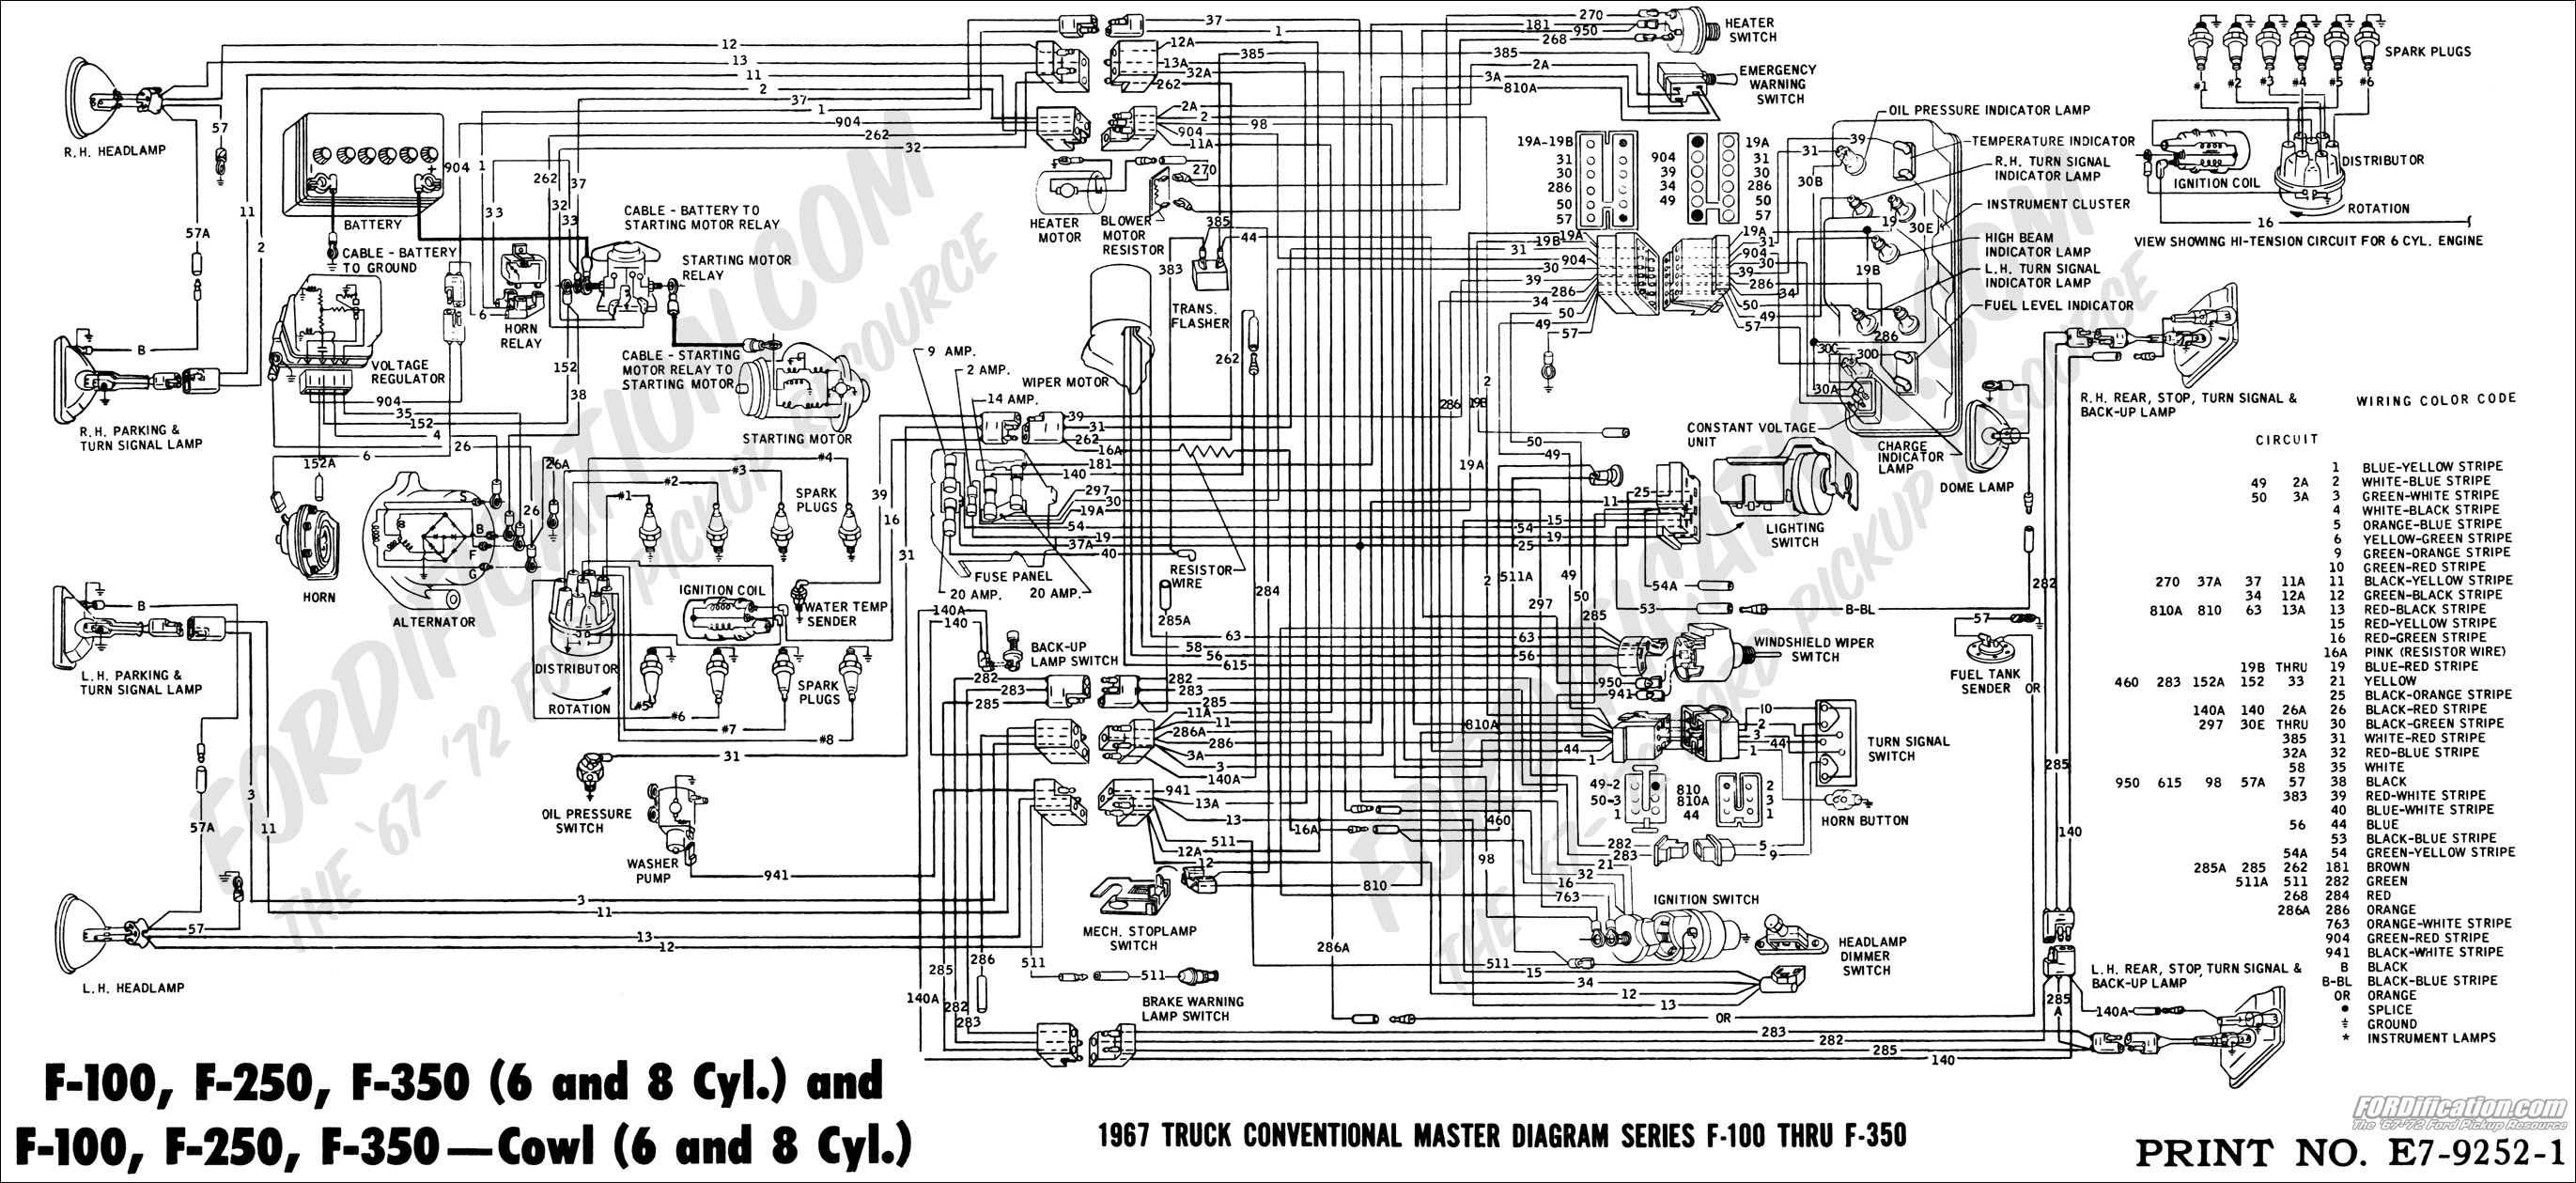 1999 ford f 150 wiring harness diagram wiring diagram article  99 ford f 150 wiring diagram #9